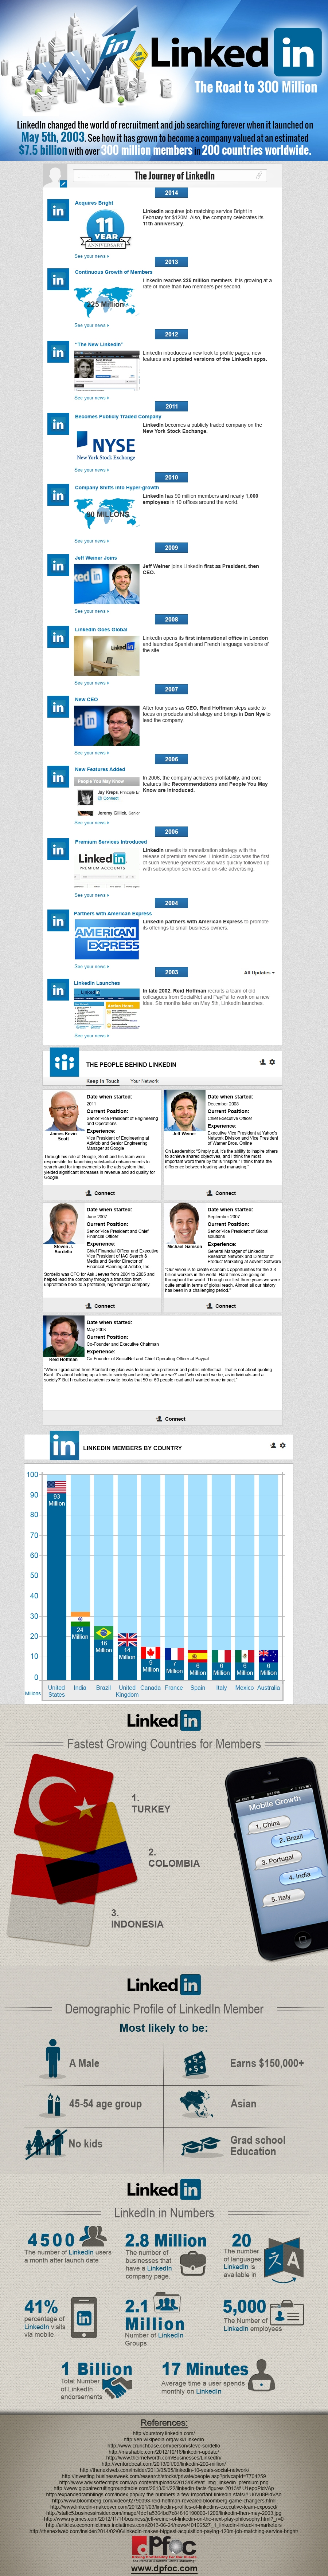 The Top 10 LinkedIn Facts